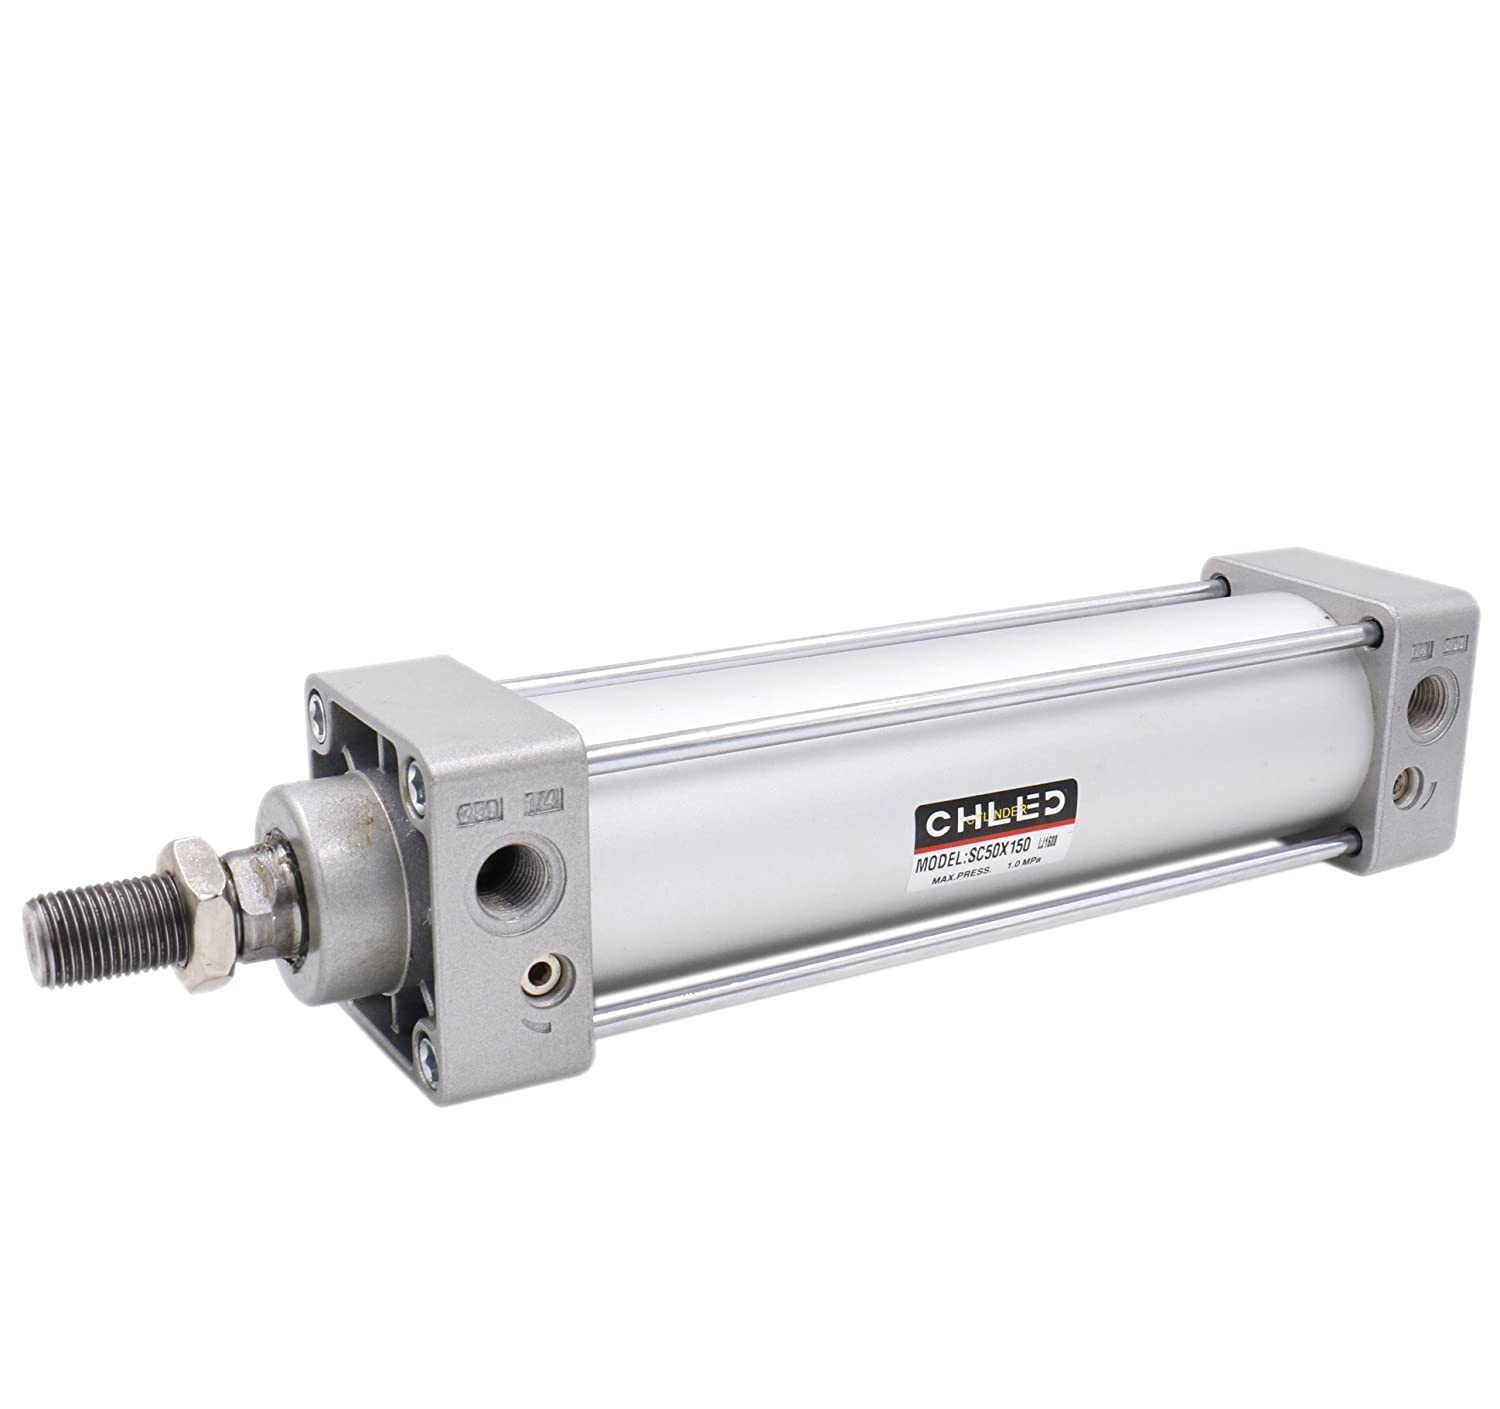 Heschen pneumatique Standard Cylindre SC 50– 150  PT1/4  ports 50  mm Bore 150  mm Stroke double action CHLED Pneumatic